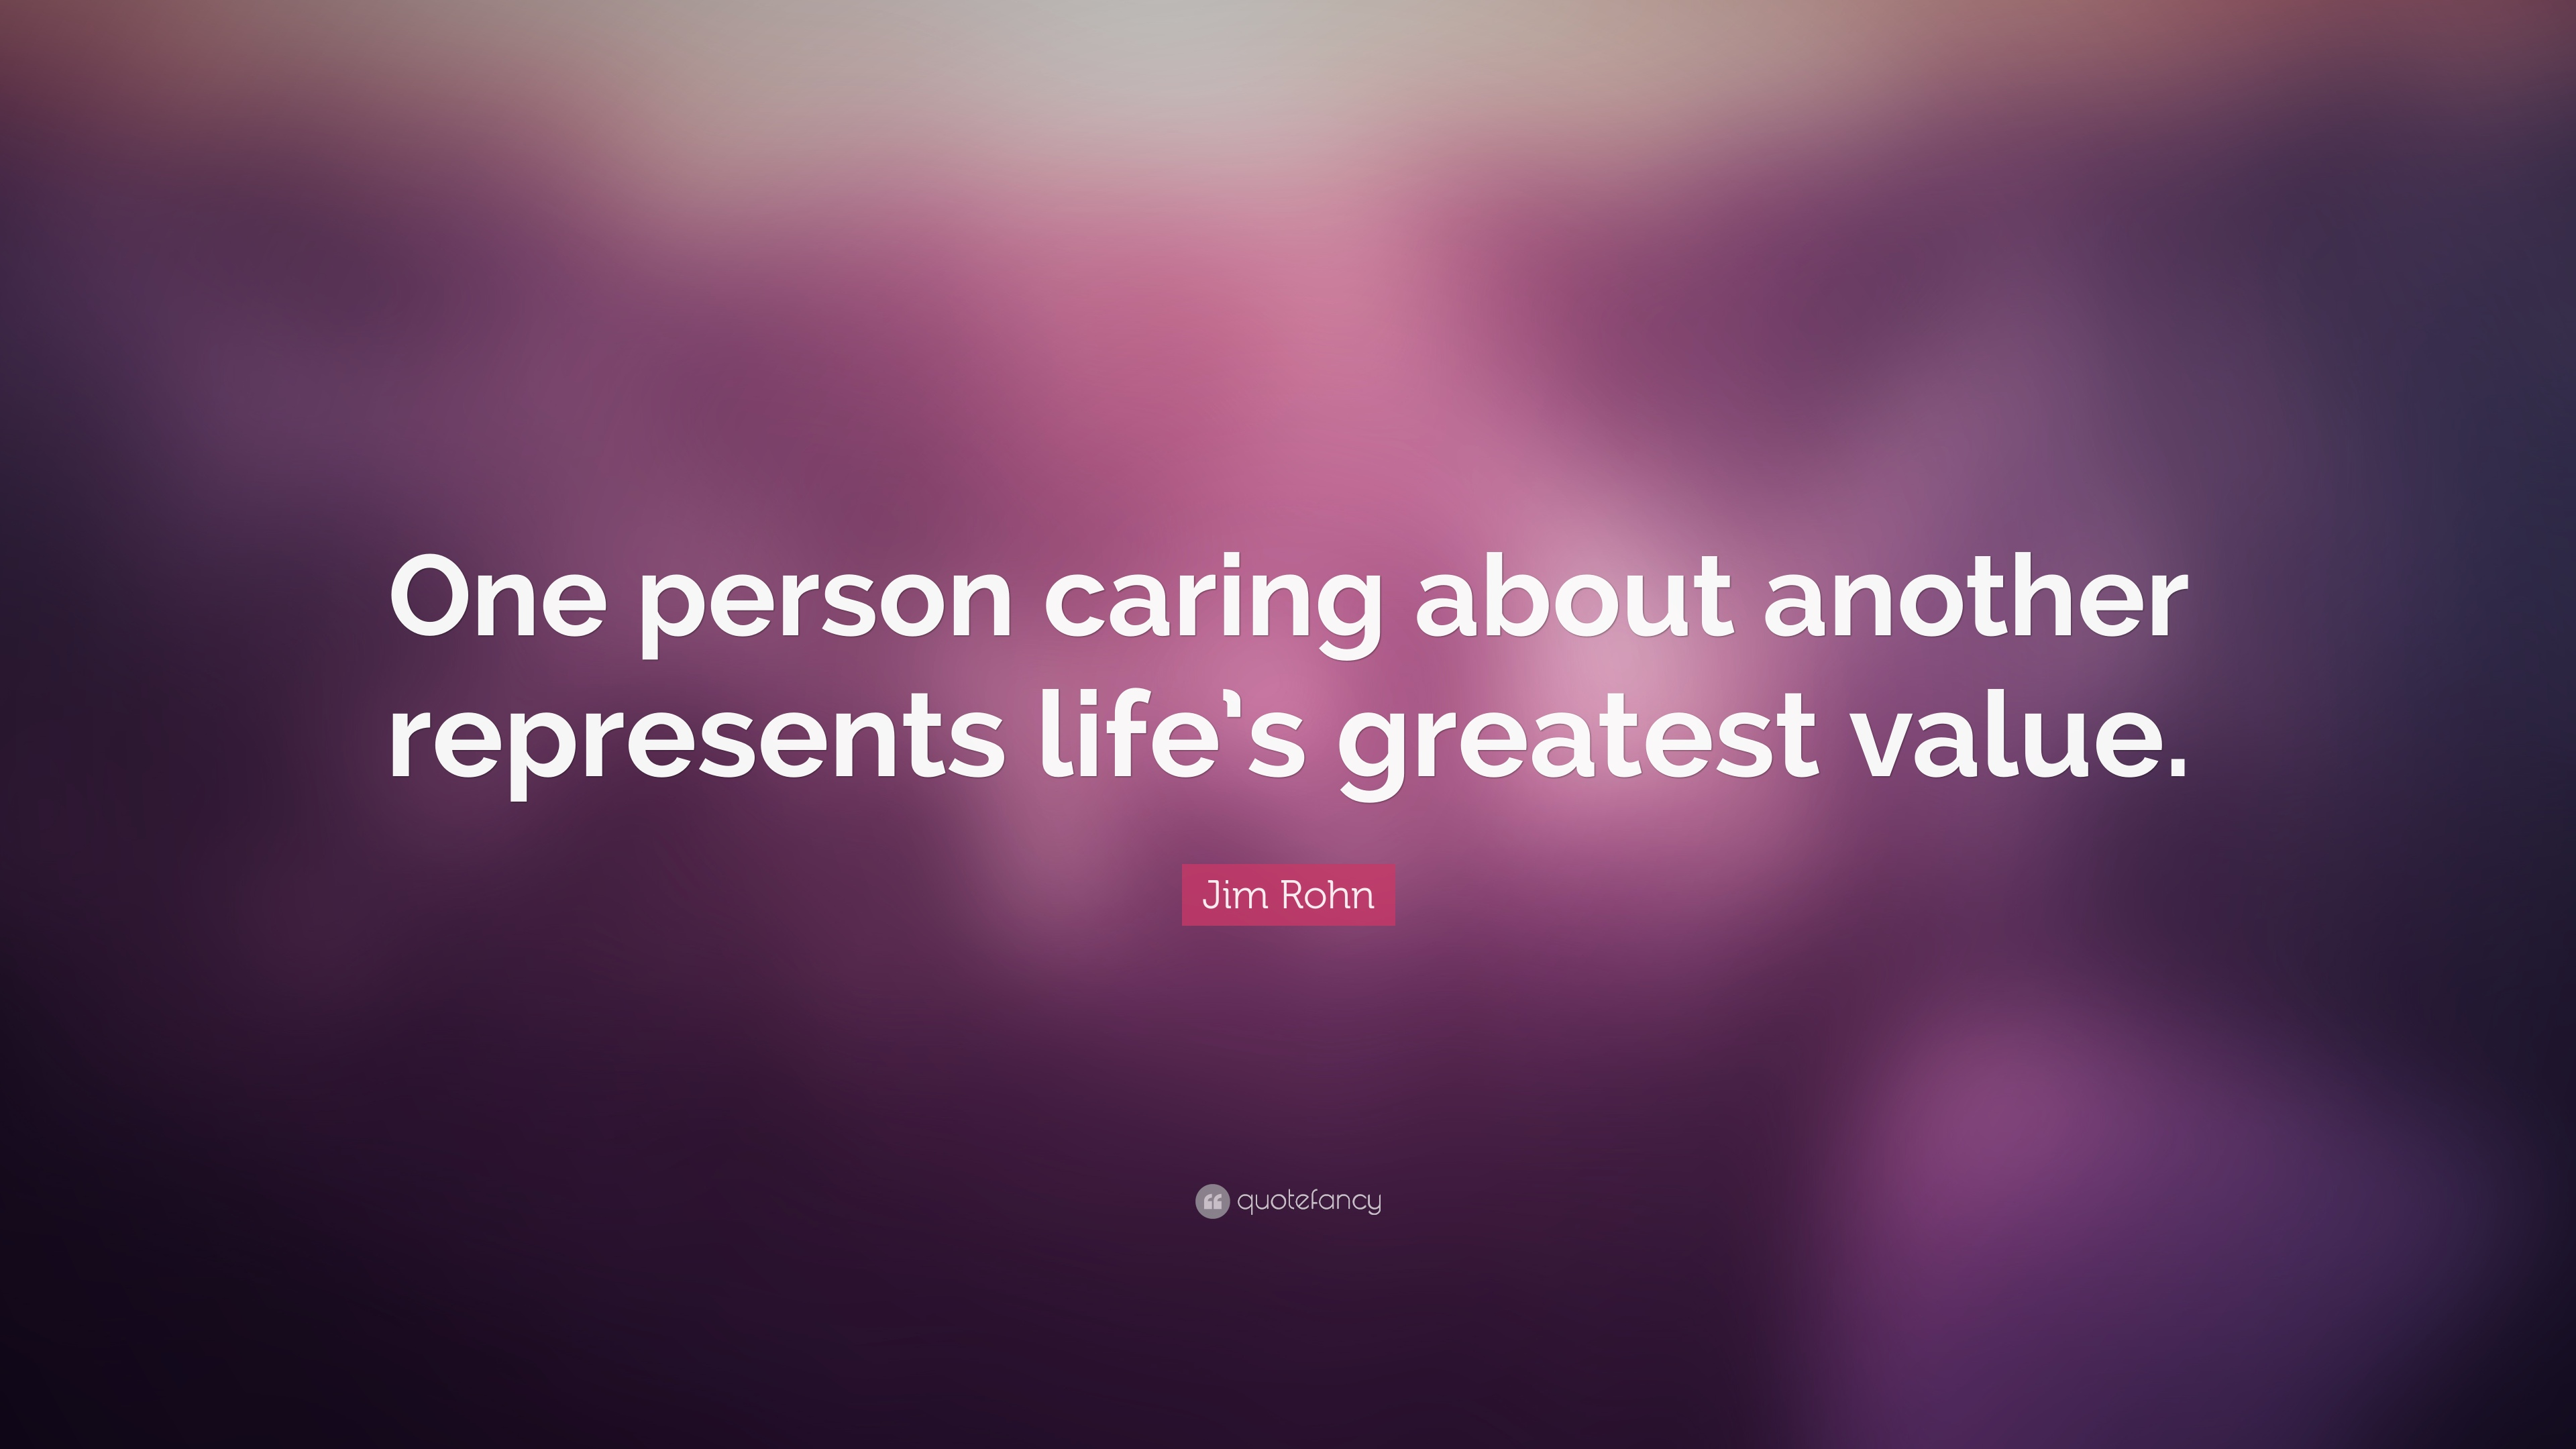 Quotes About Caring Caring Quotes 40 Wallpapers  Quotefancy